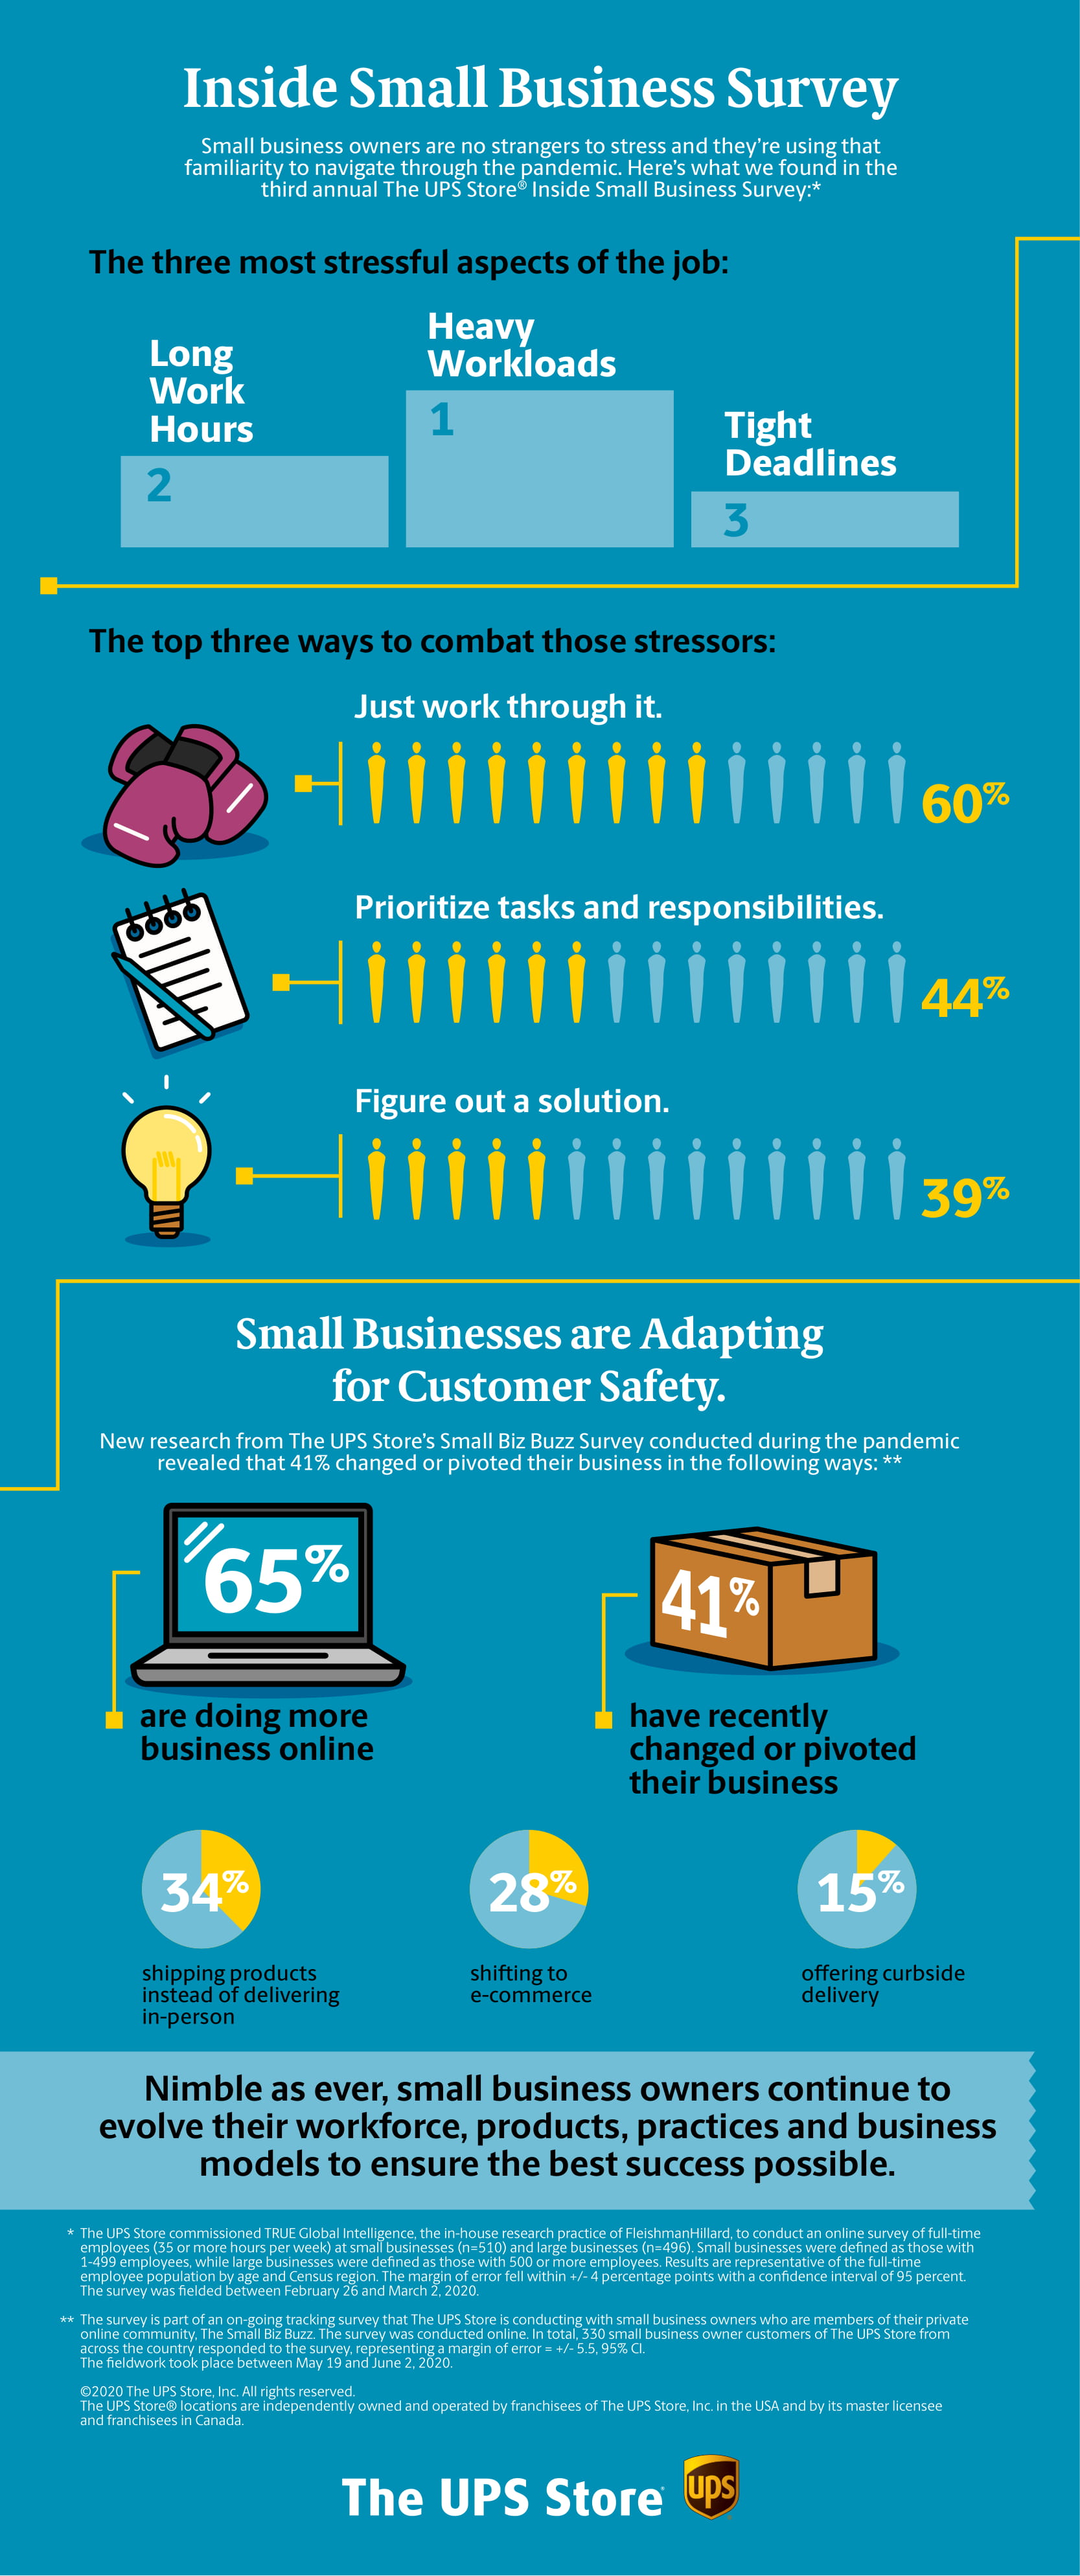 UPS Store Small Business Pivoting Survey